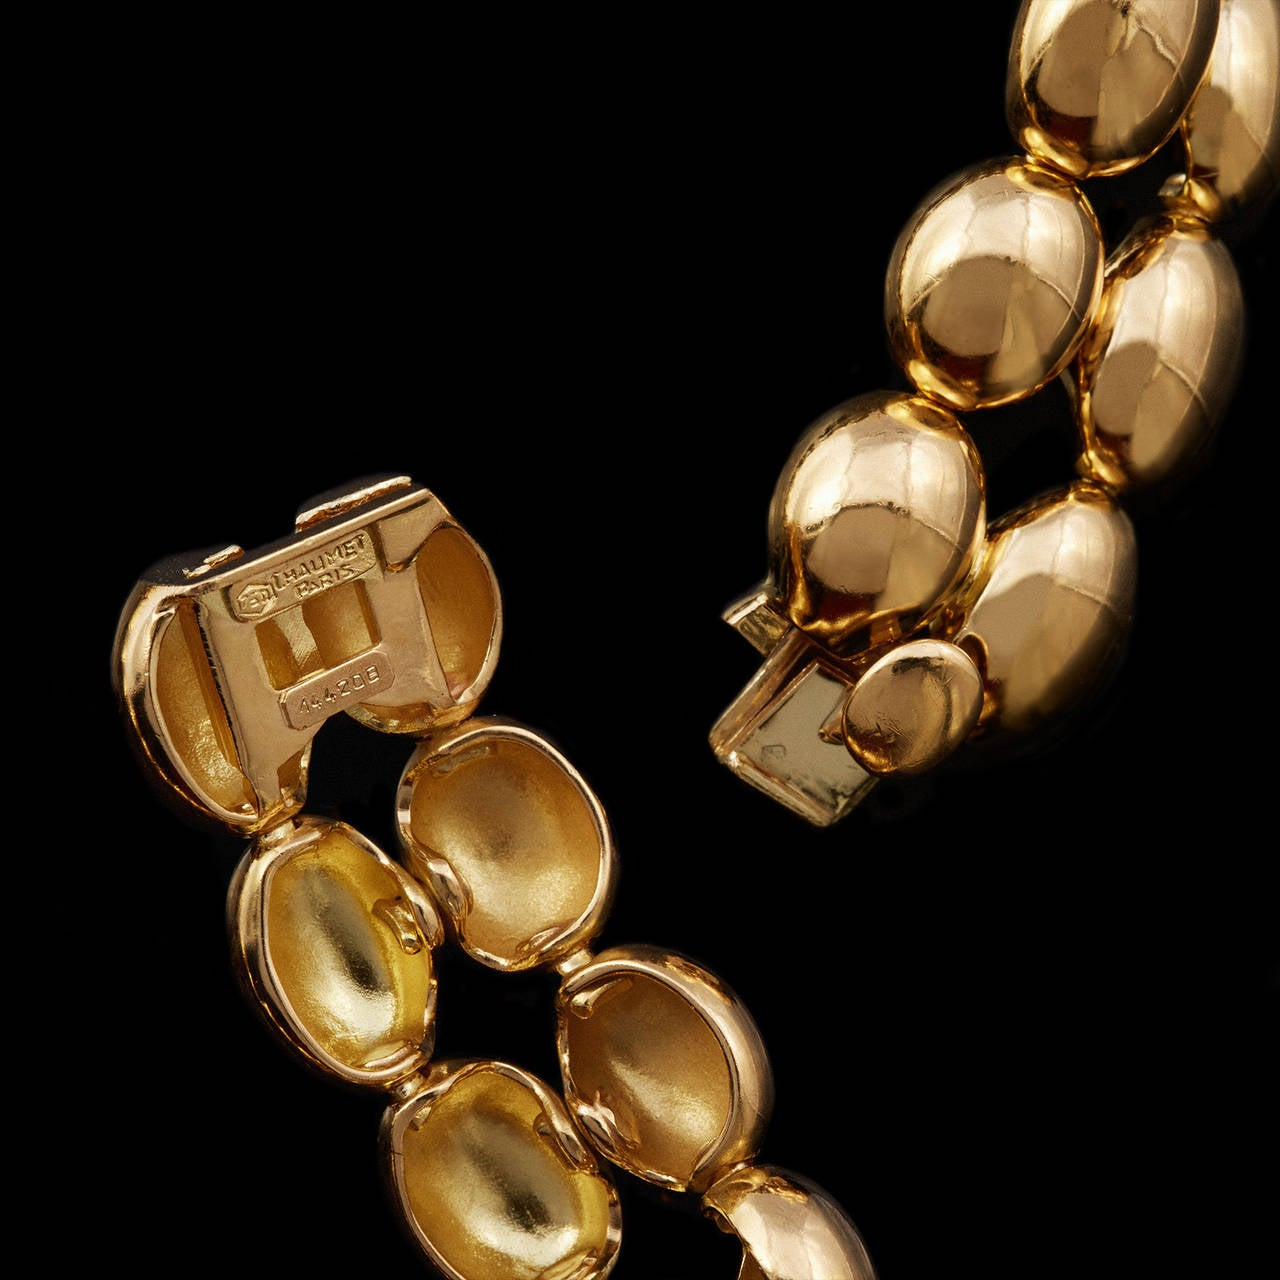 Chaumet Domed Oval Link Gold Necklace In Excellent Condition For Sale In San Francisco, CA